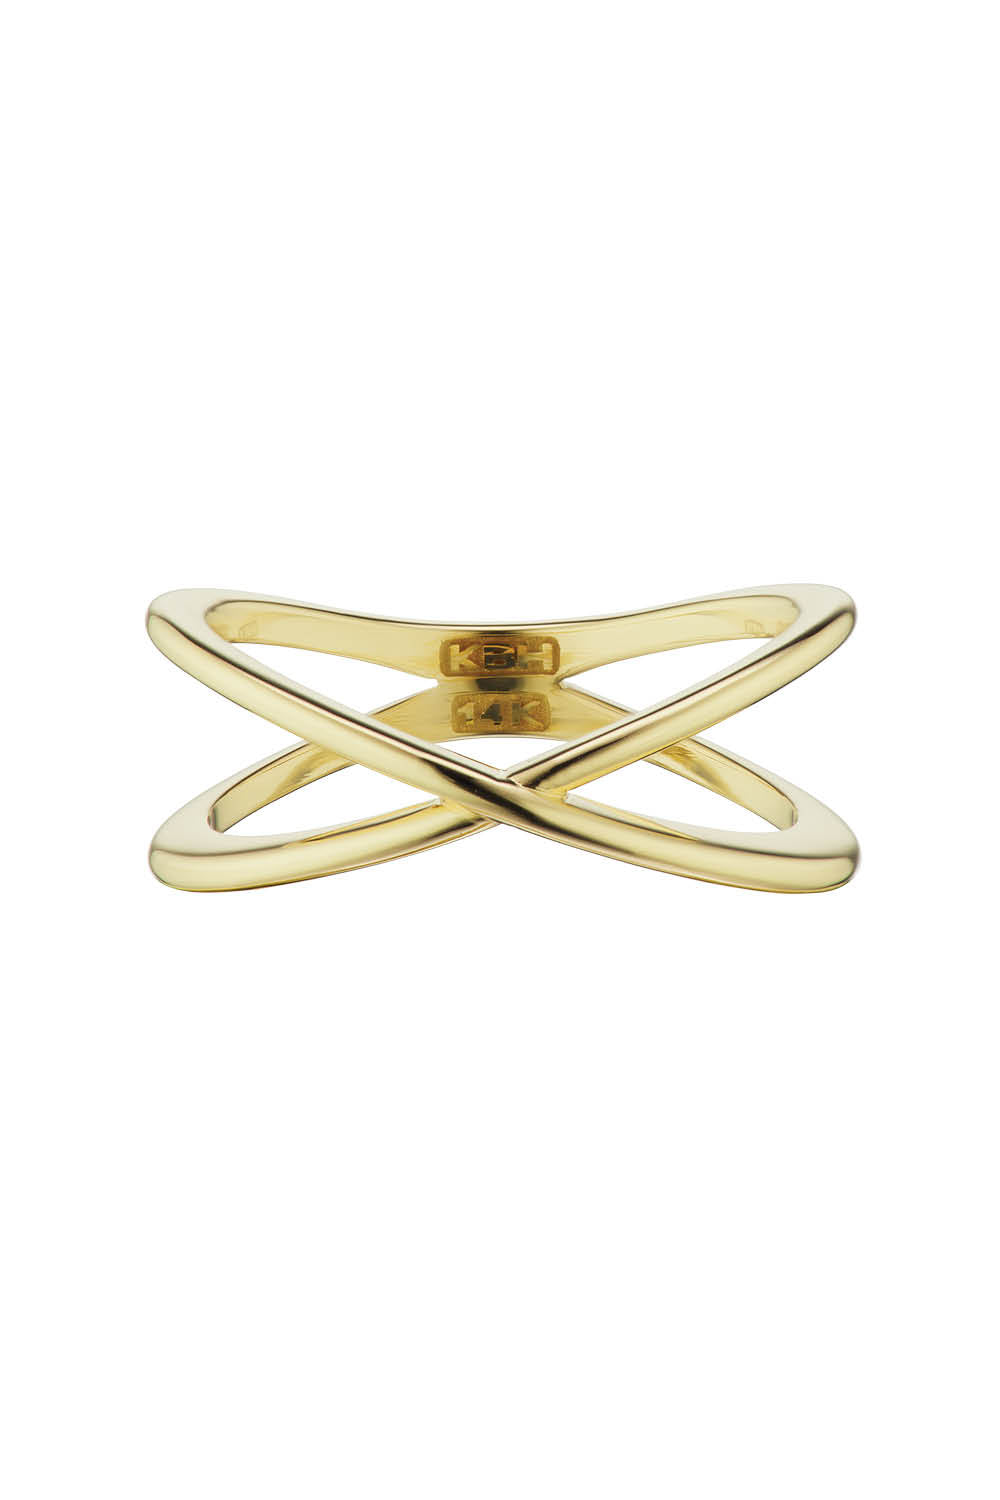 X Ring in Yellow Gold